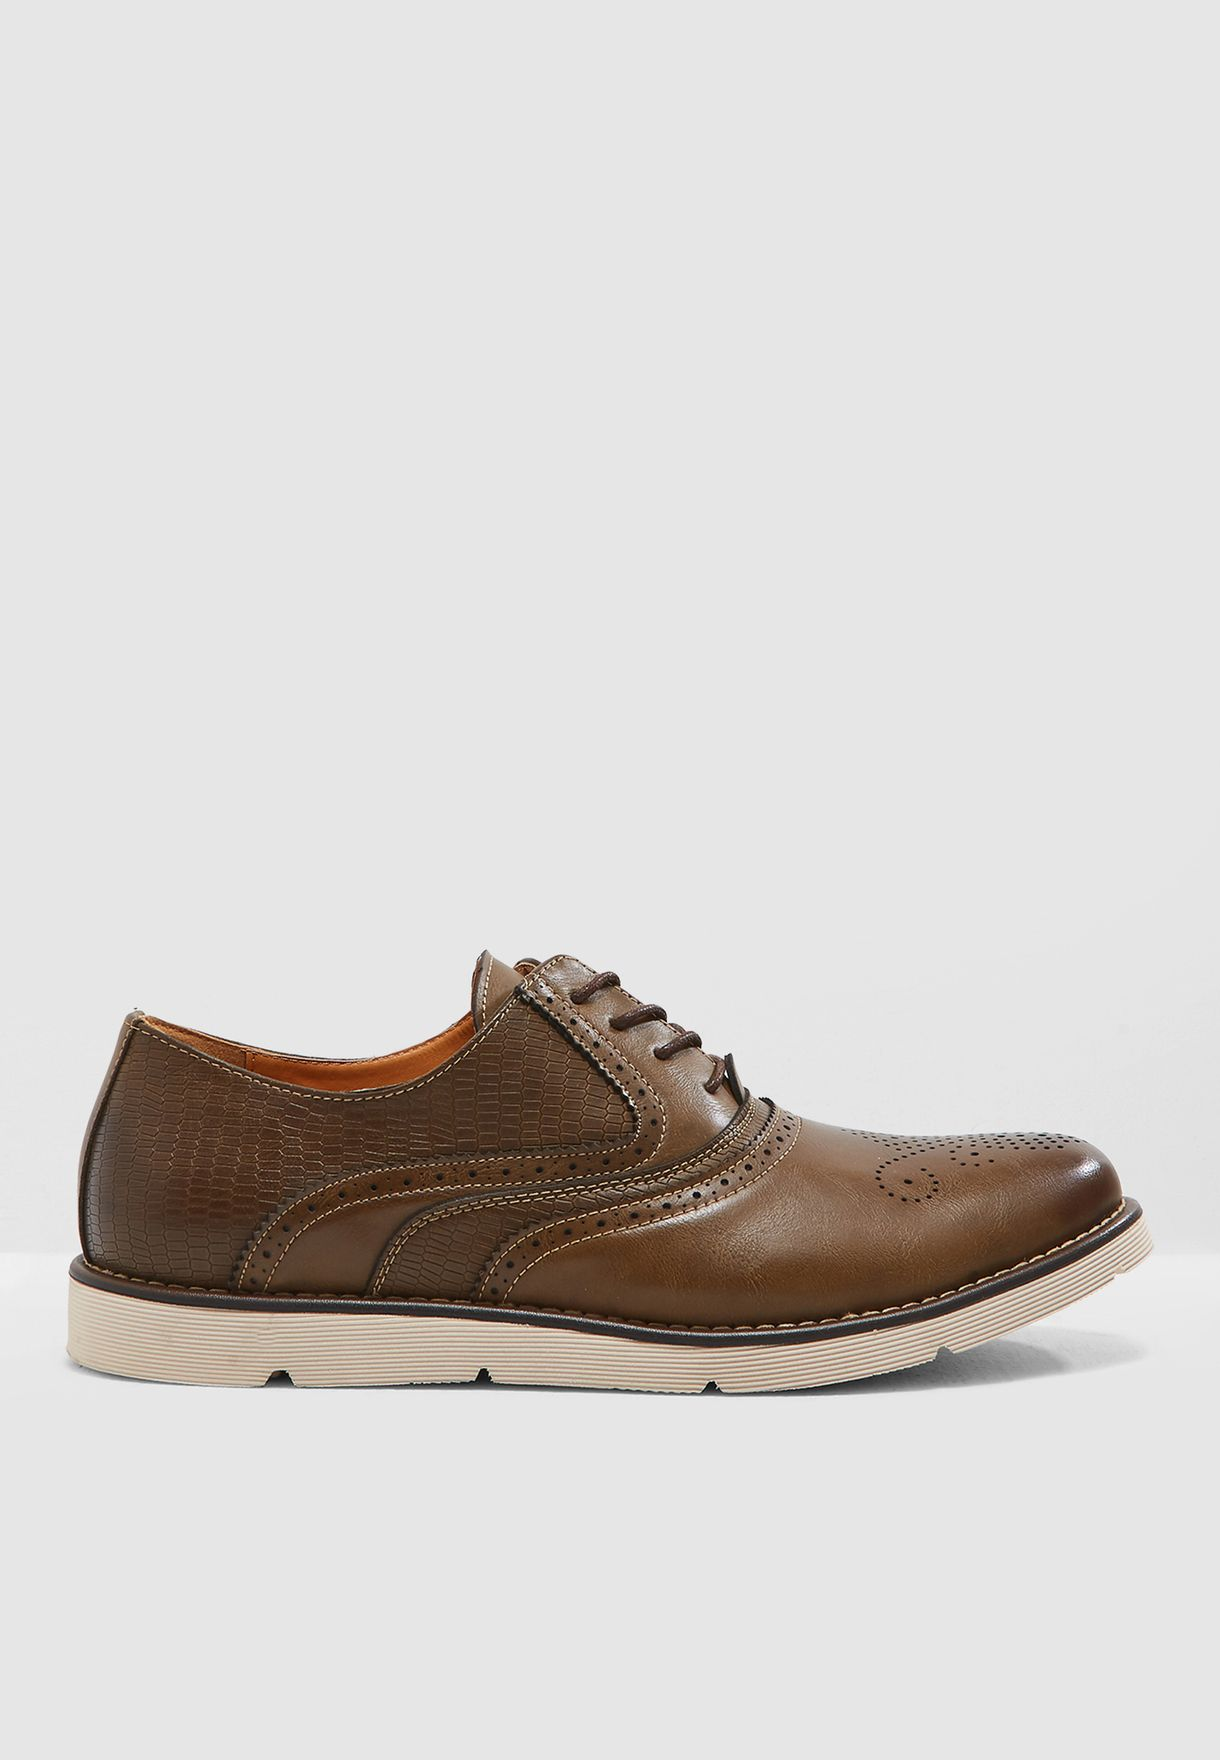 Brogue Casual Oxford Lace Ups